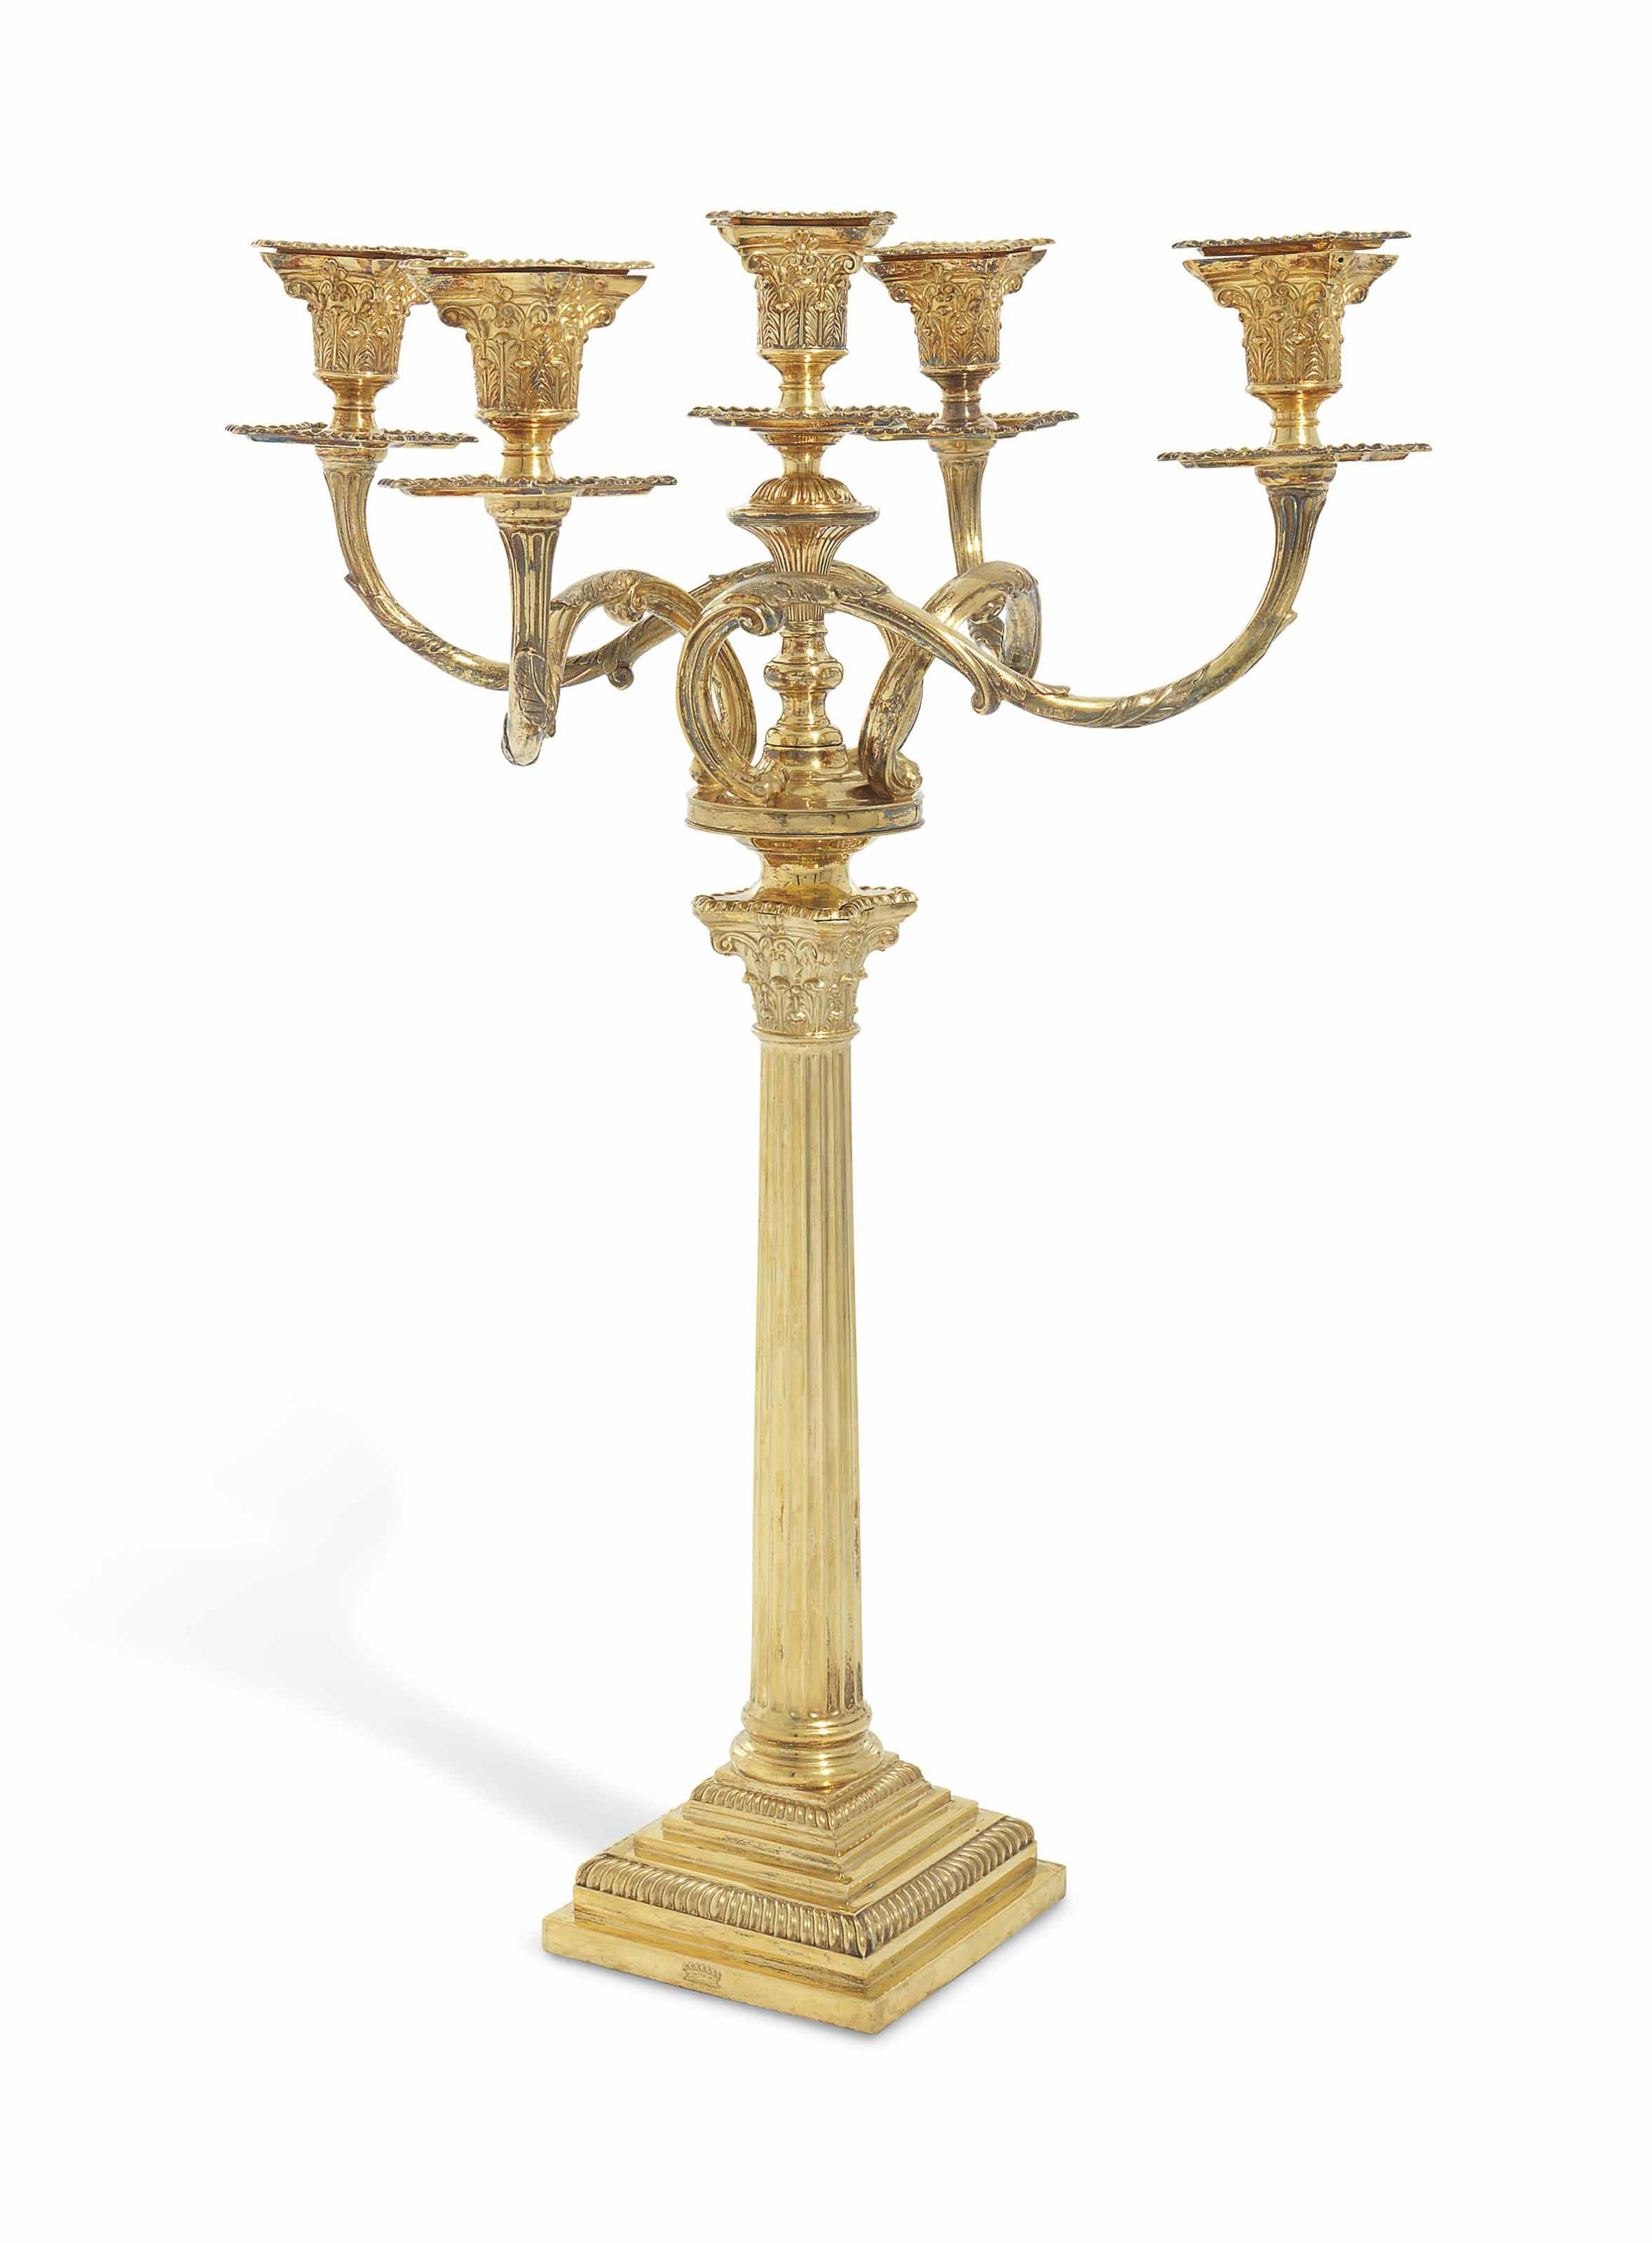 A LATE VICTORIAN SILVER-GILT FIVE-LIGHT CANDELABRUM